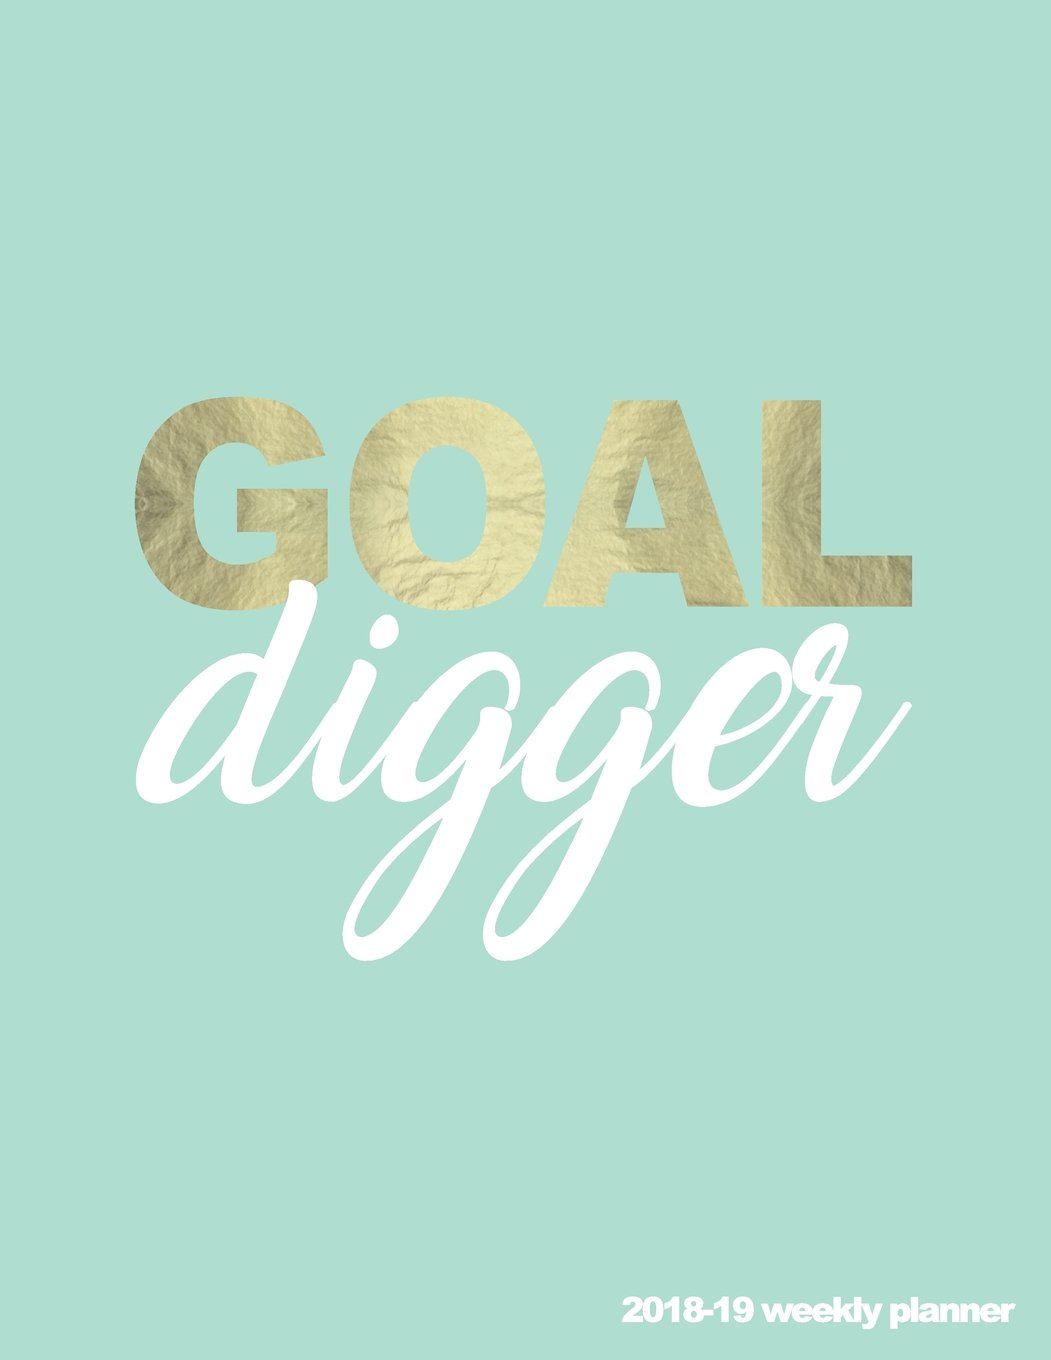 Goal Digger 2018-19 Weekly Planner: 18-Month Weekly Planner 8.5 x 11 in  July 2018 - Dec 2019 Weekly View  To-Do Lists, Inspirational Quotes + Much More (Empowering Stationery) (Volume 1) pdf epub